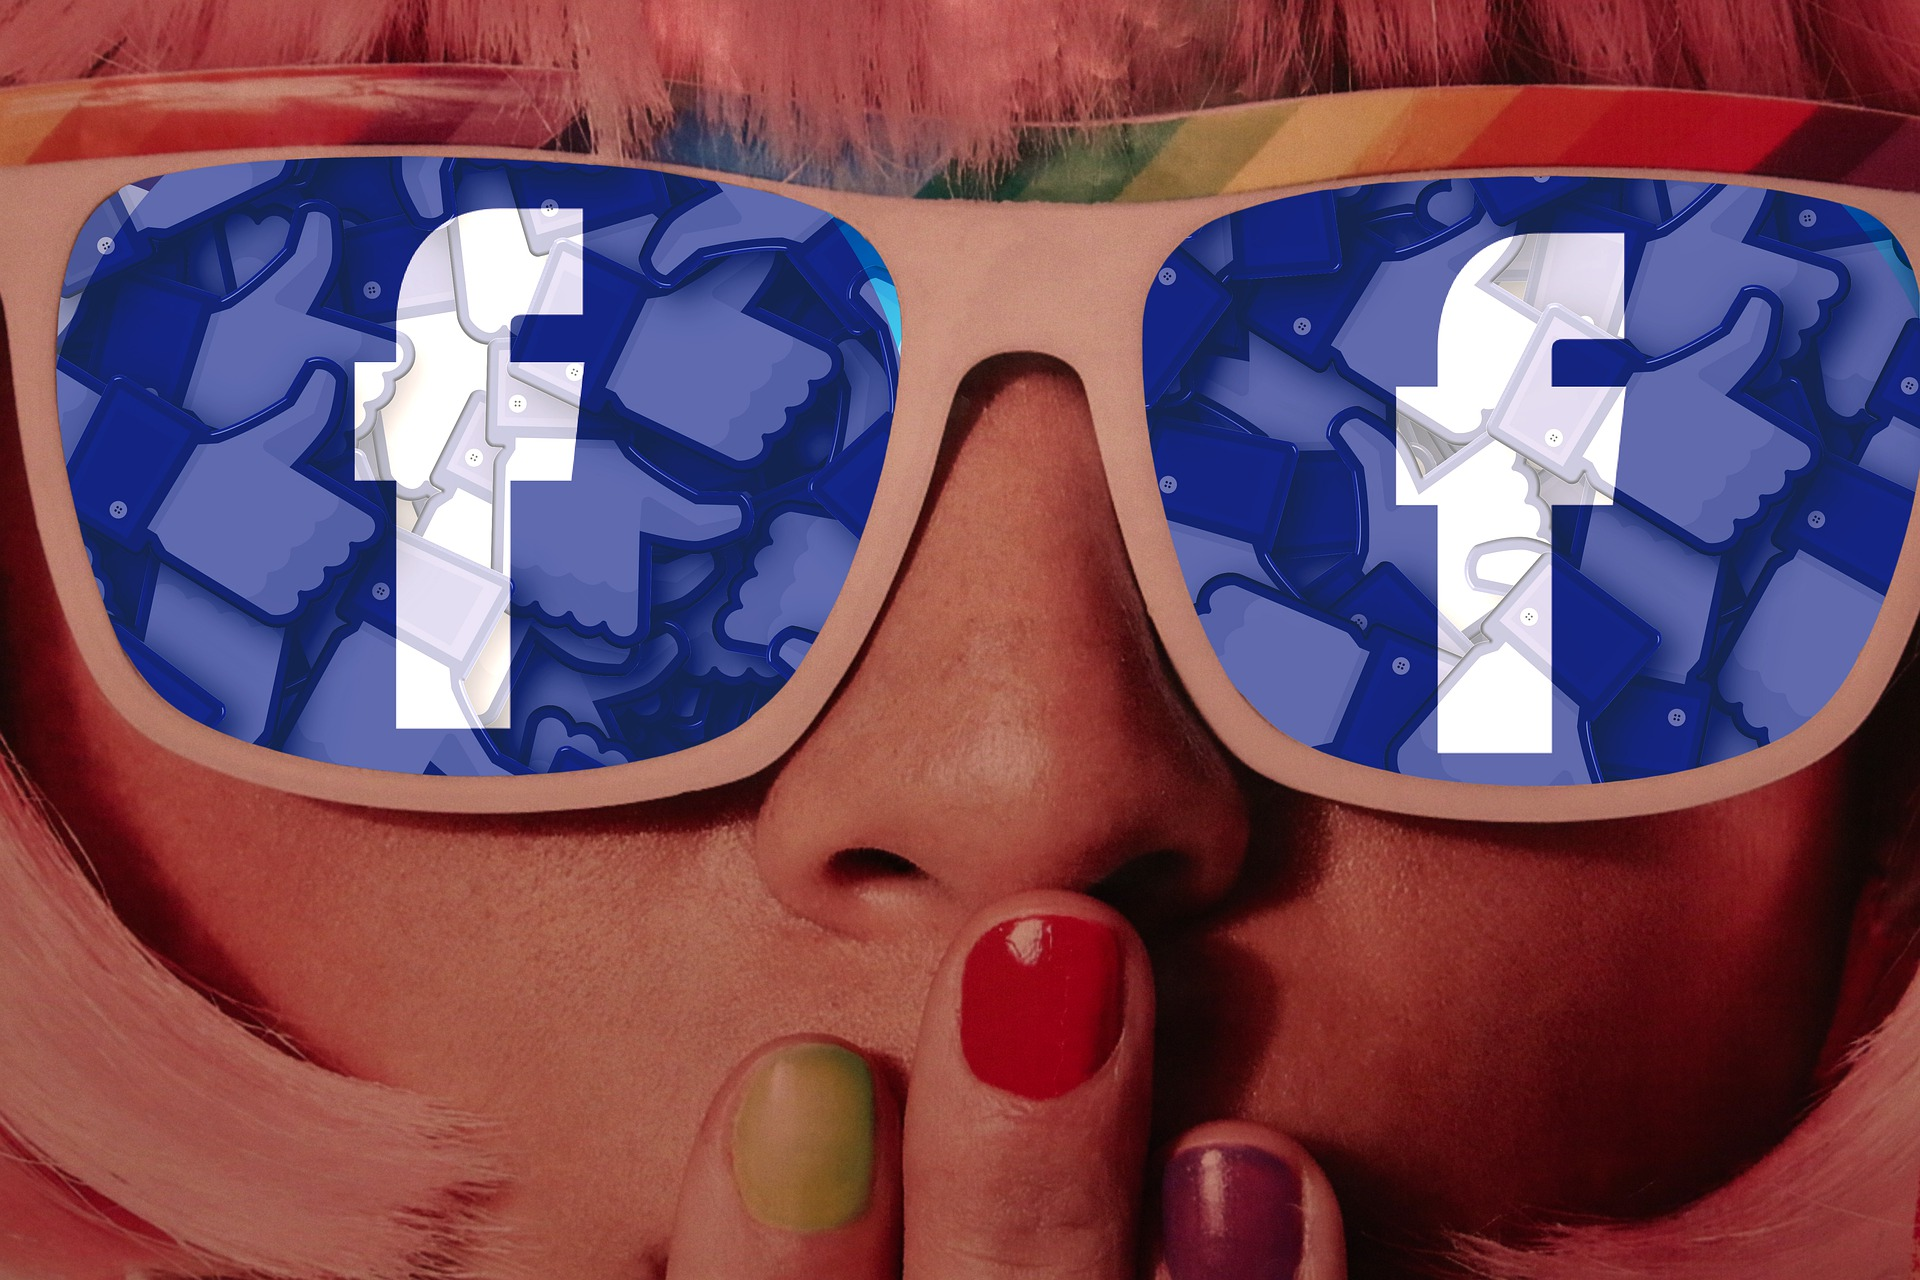 woman wearing sunglasses with facebook logo on lenses